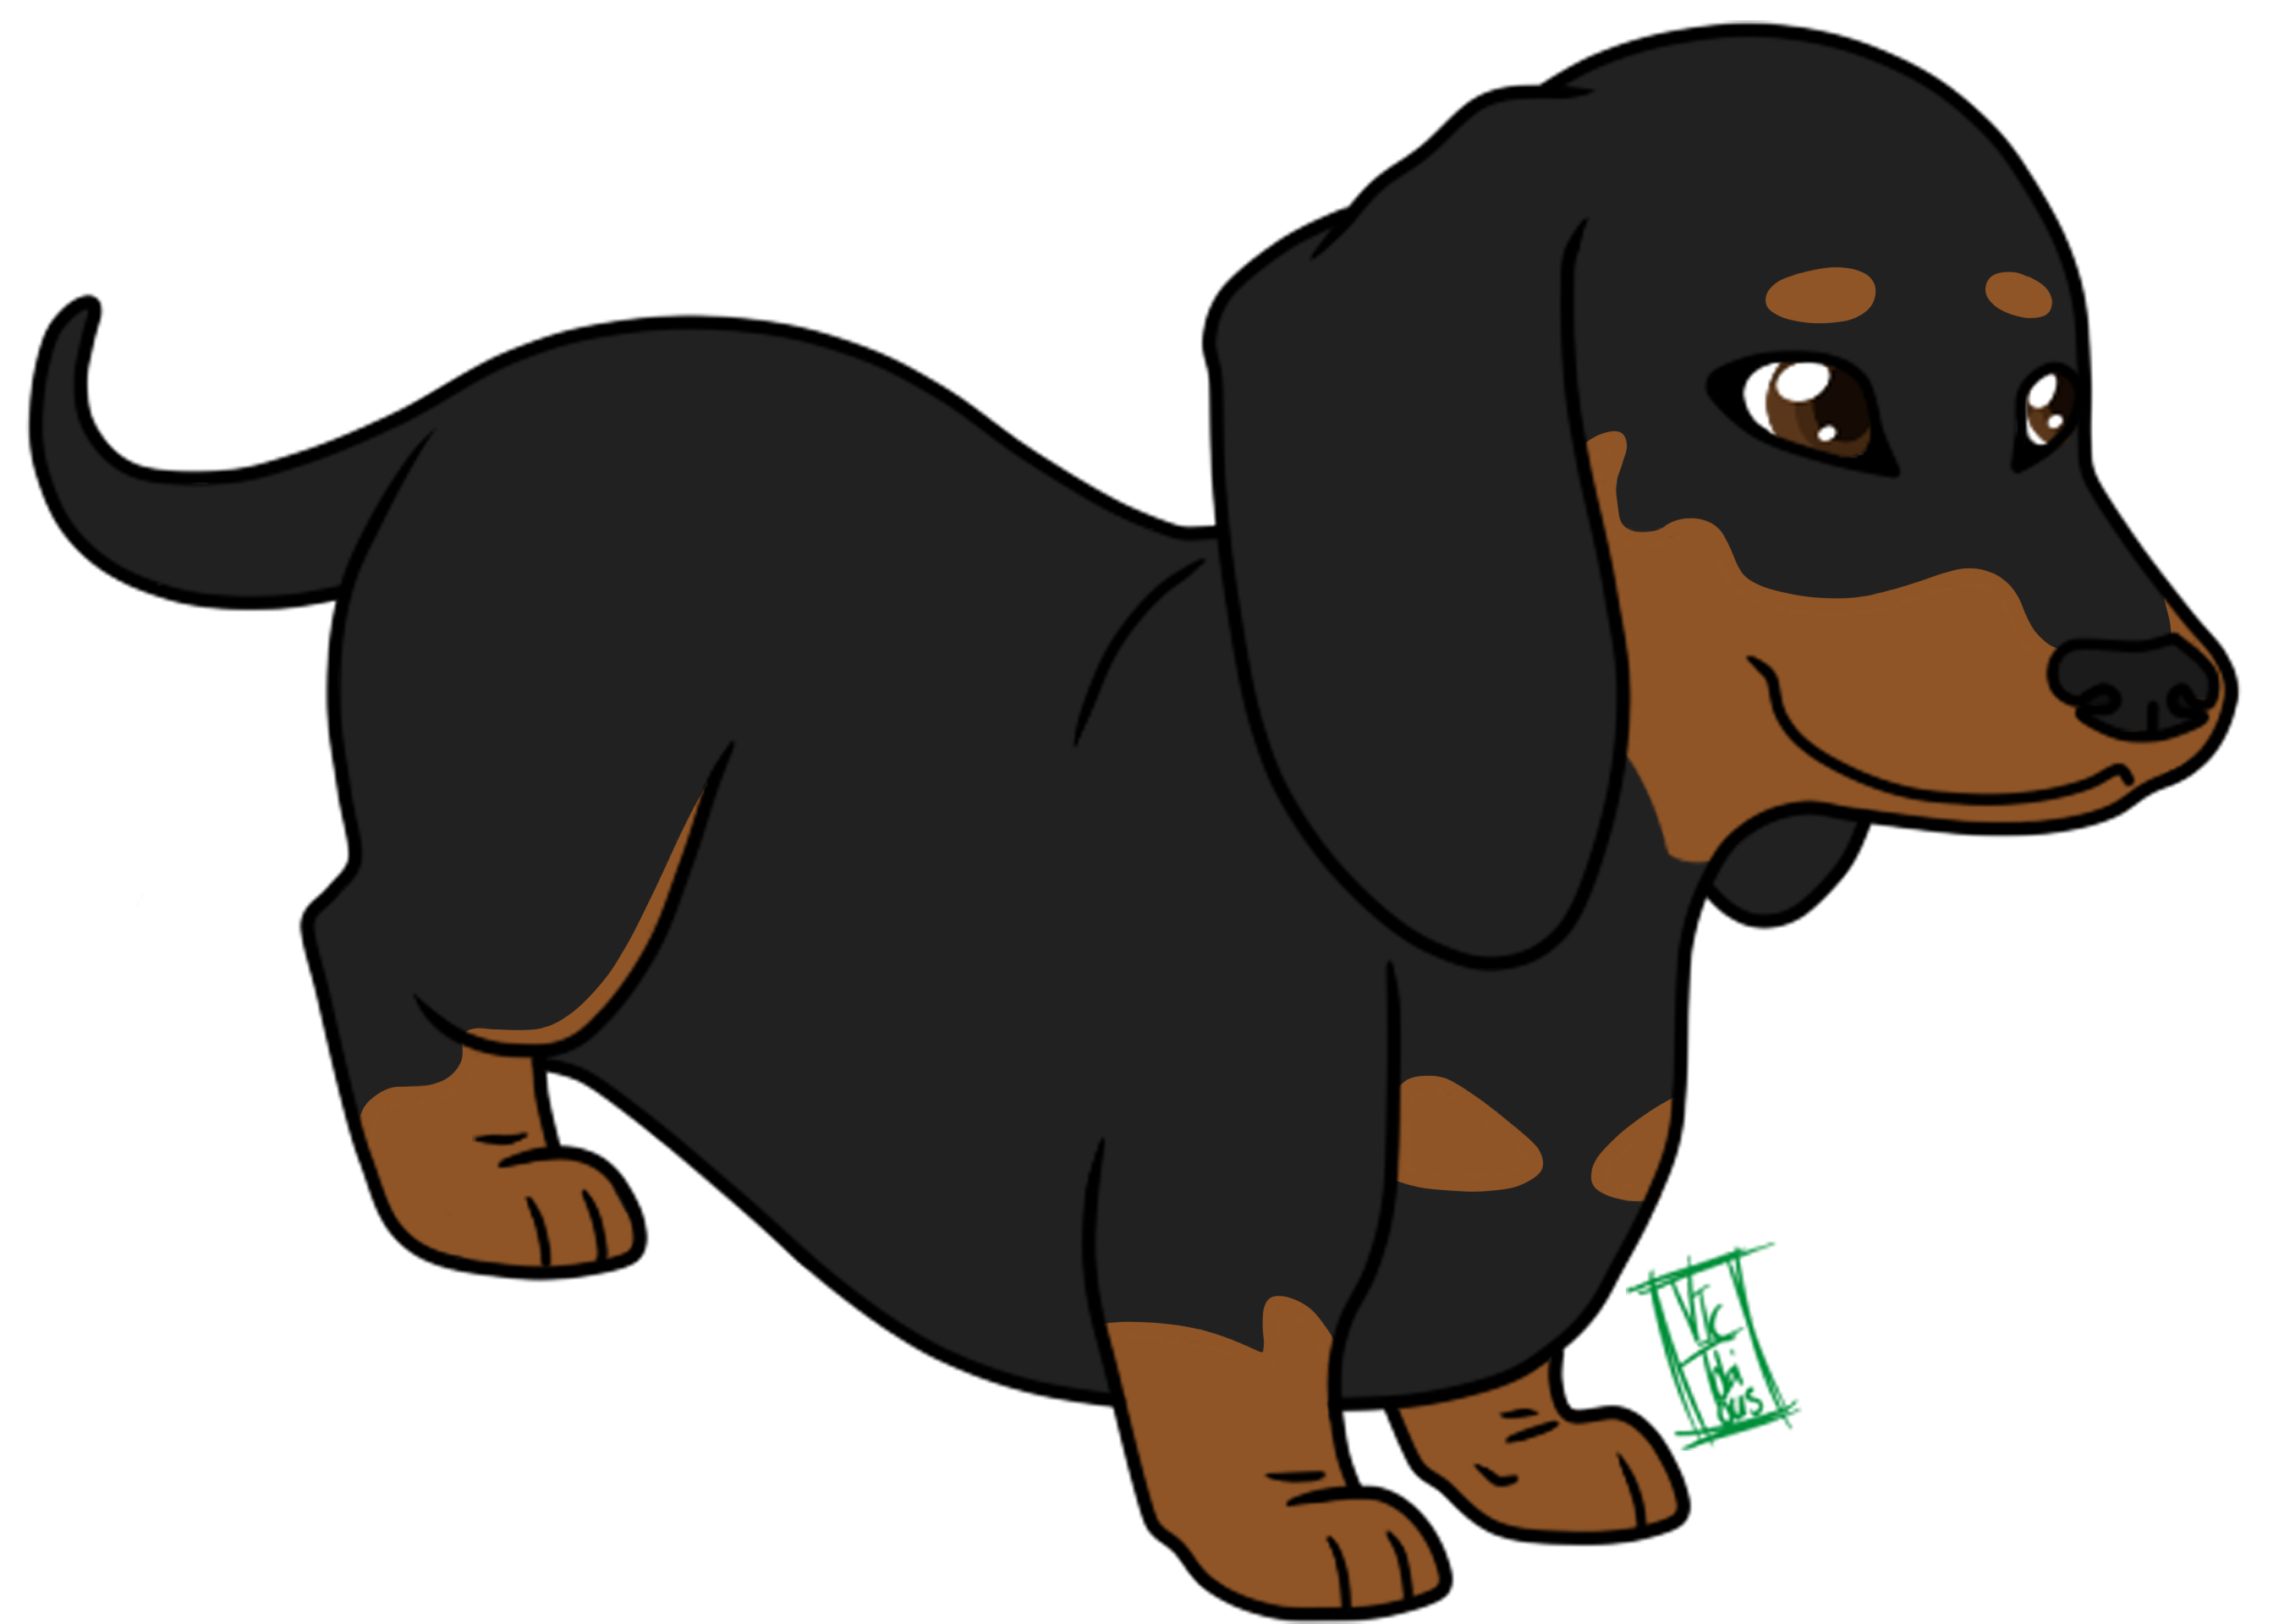 Animate drawing cute chibi dog. Dachshund puppy cartoon animation